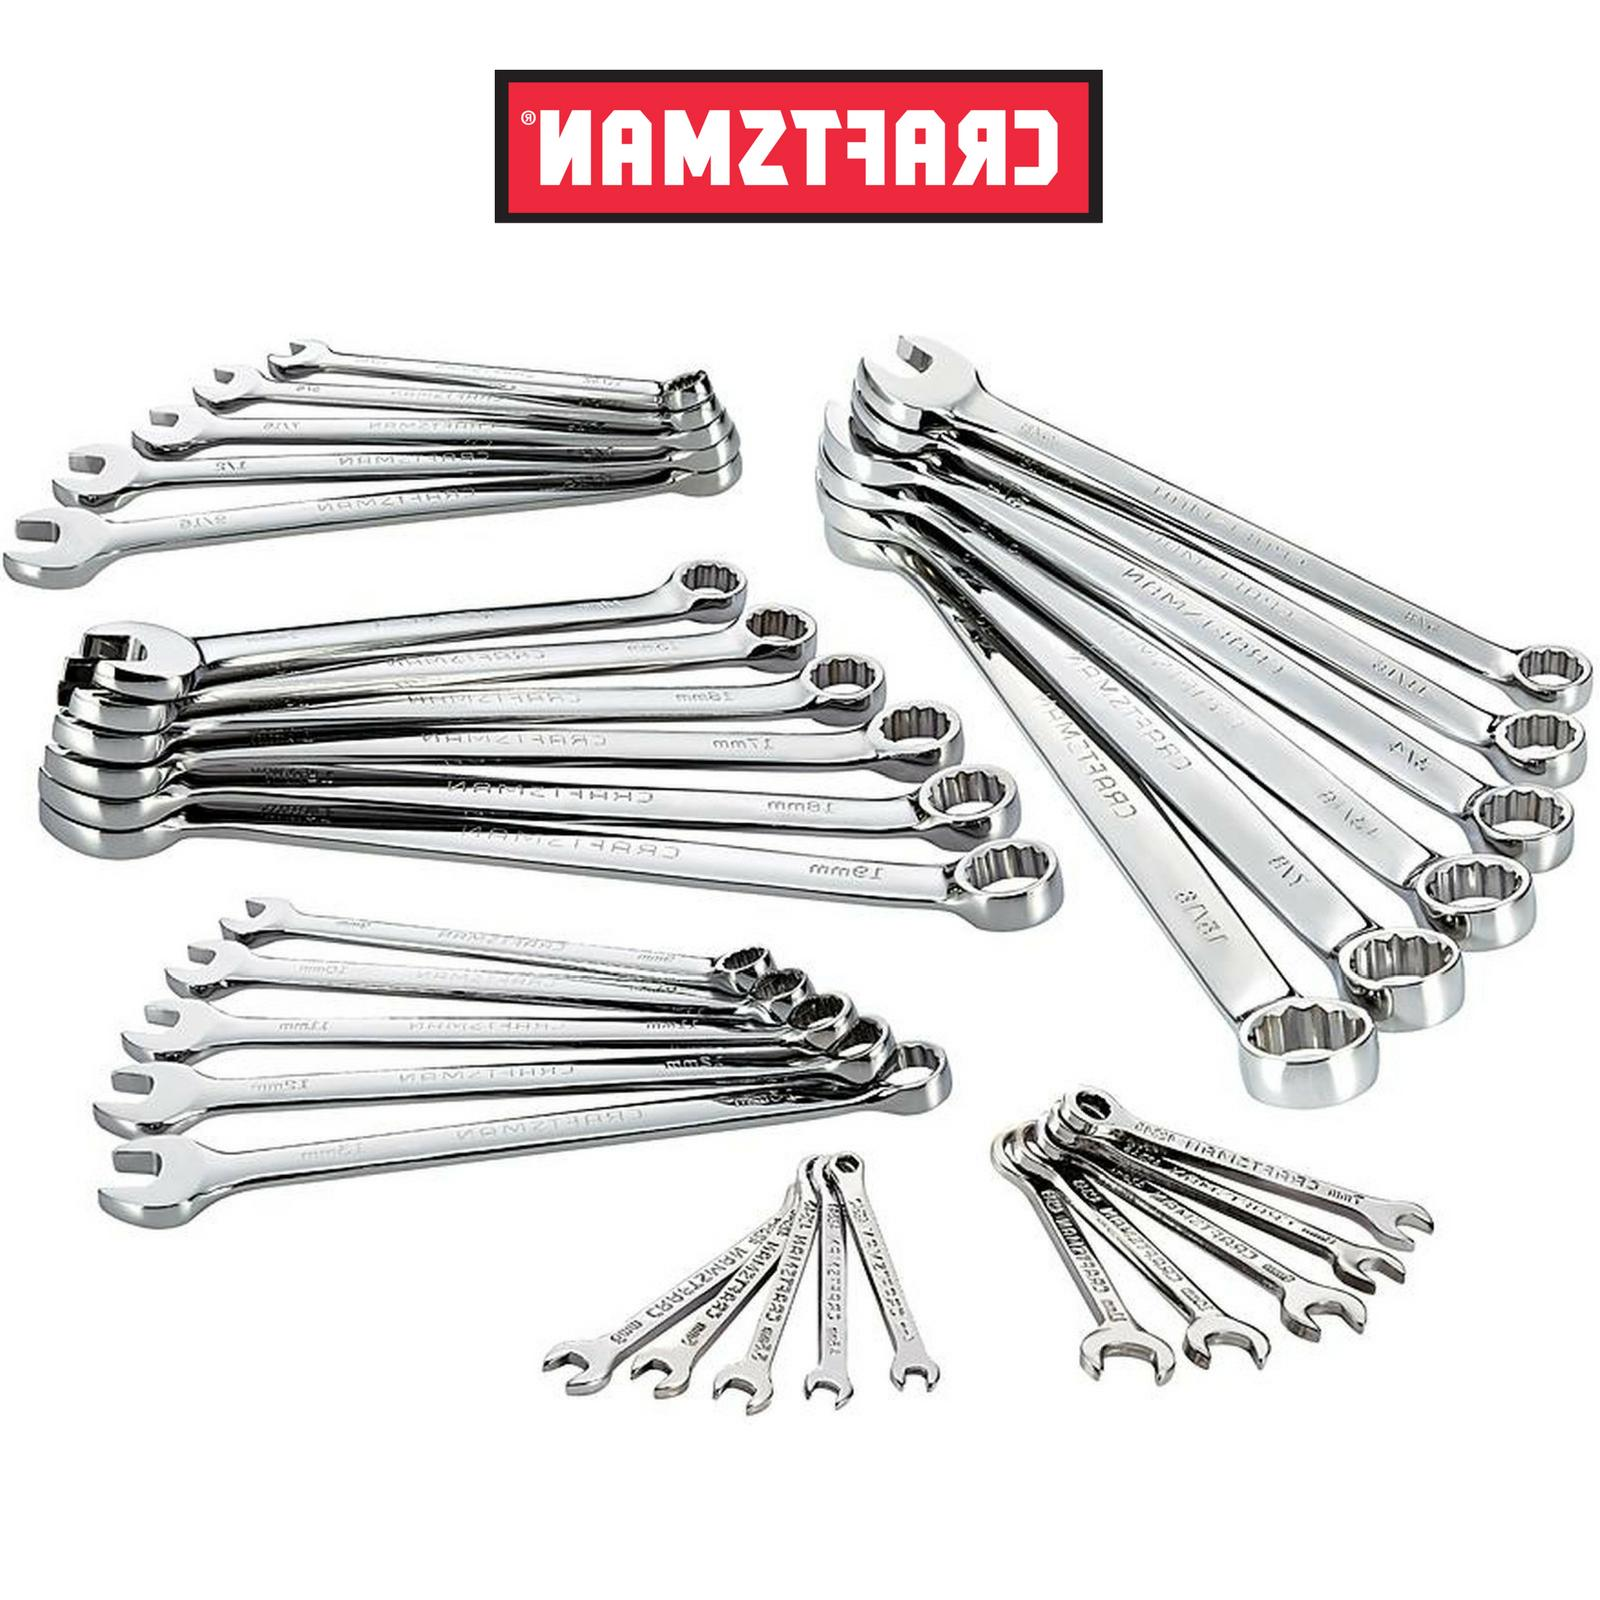 inch metric combination wrench set